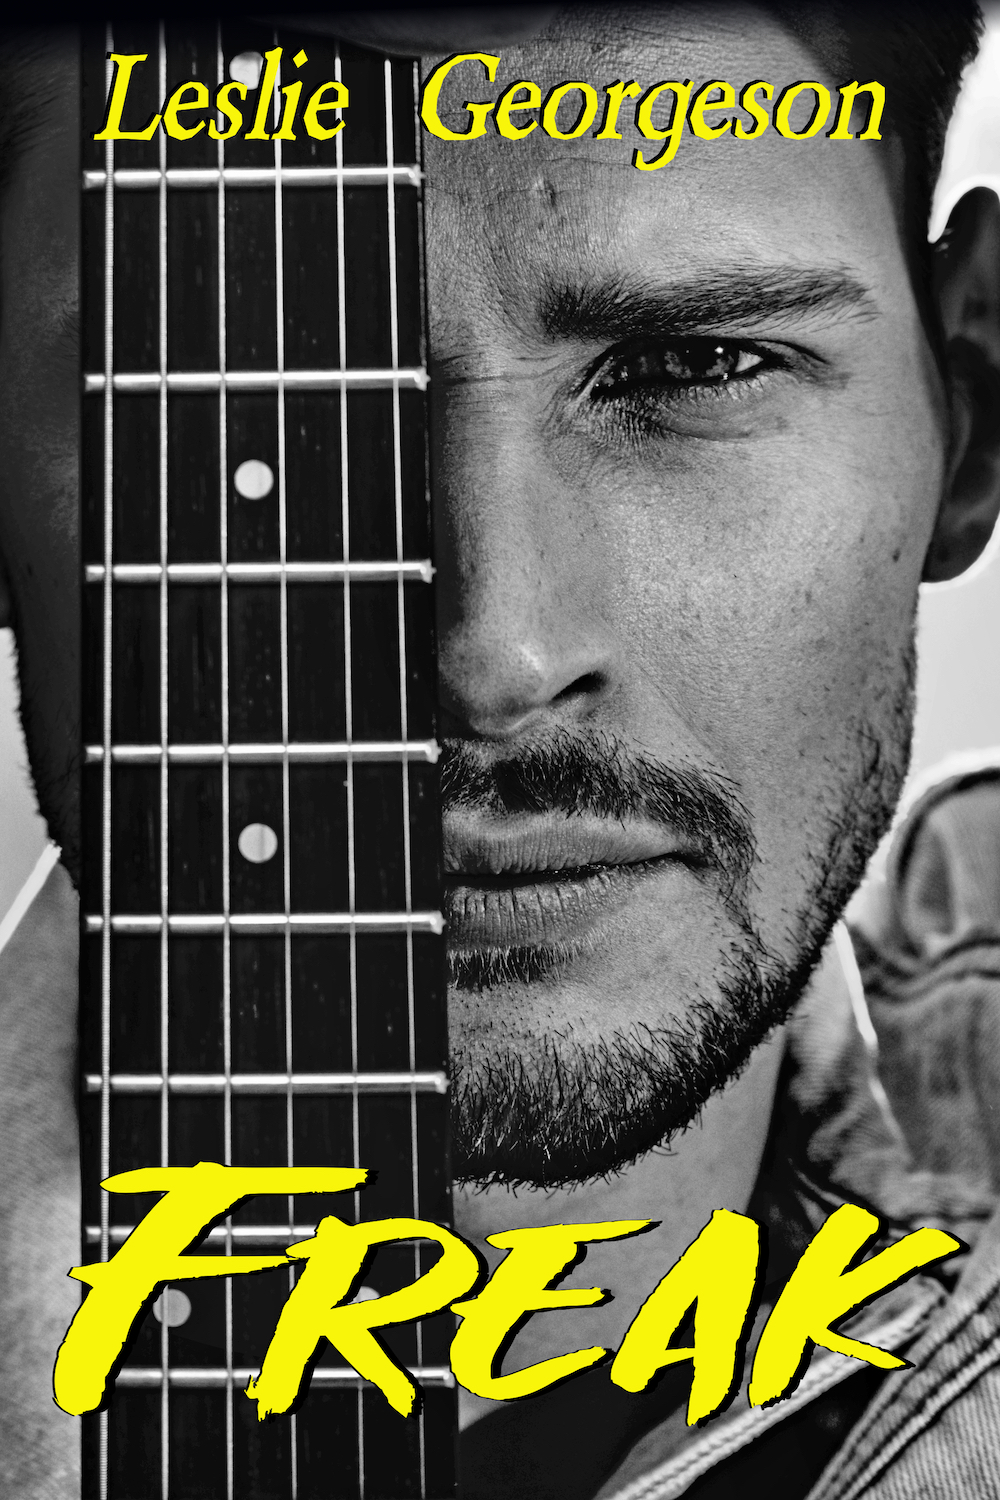 Cover image of Freak by Leslie Georgeson. Features a man's face, half covered by the neck of a guitar, with the author's name at the top and the book title at the bottom, both written in yellow font.